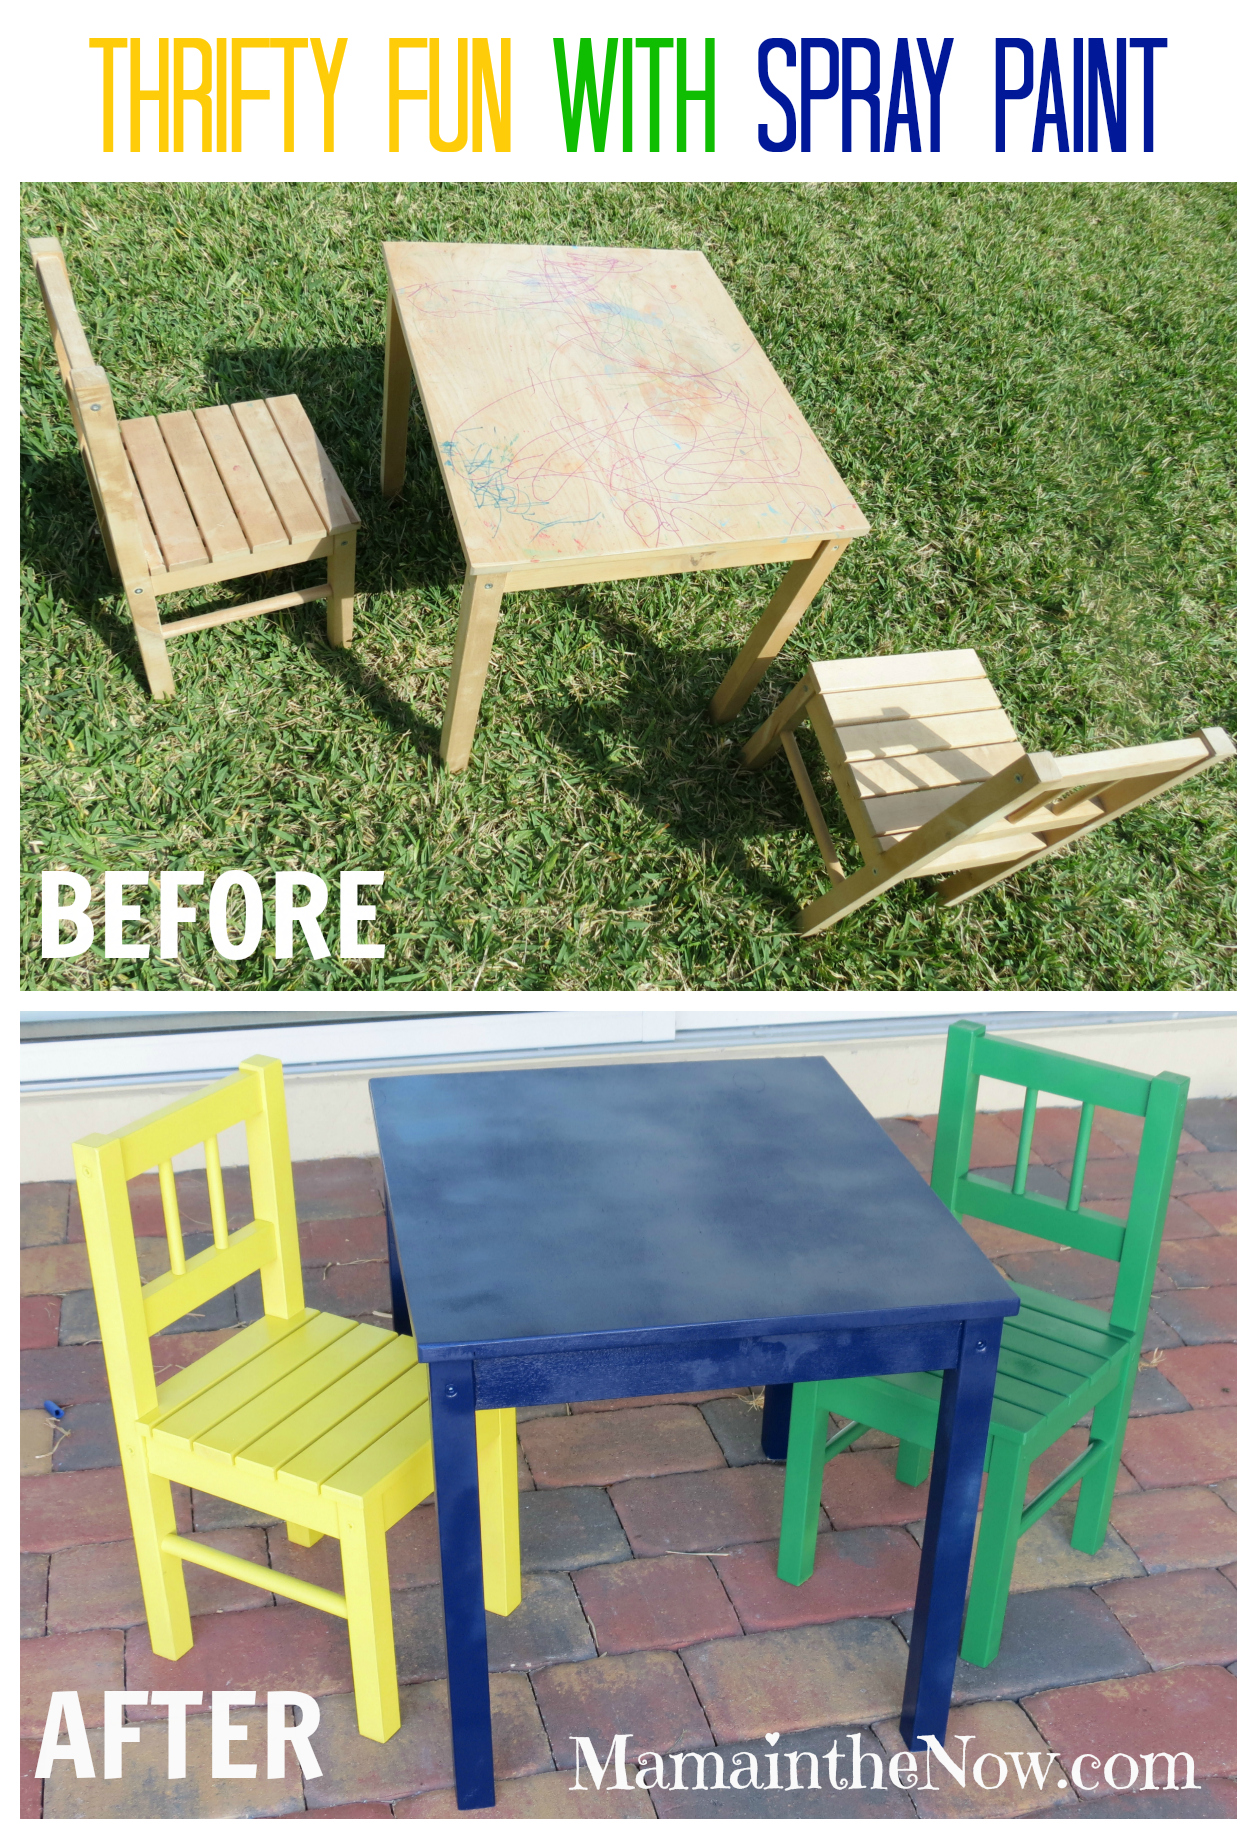 Awe Inspiring Diy Fun With The 8Th Wonder Spray Paint Ikea Table And Chairs Download Free Architecture Designs Sospemadebymaigaardcom